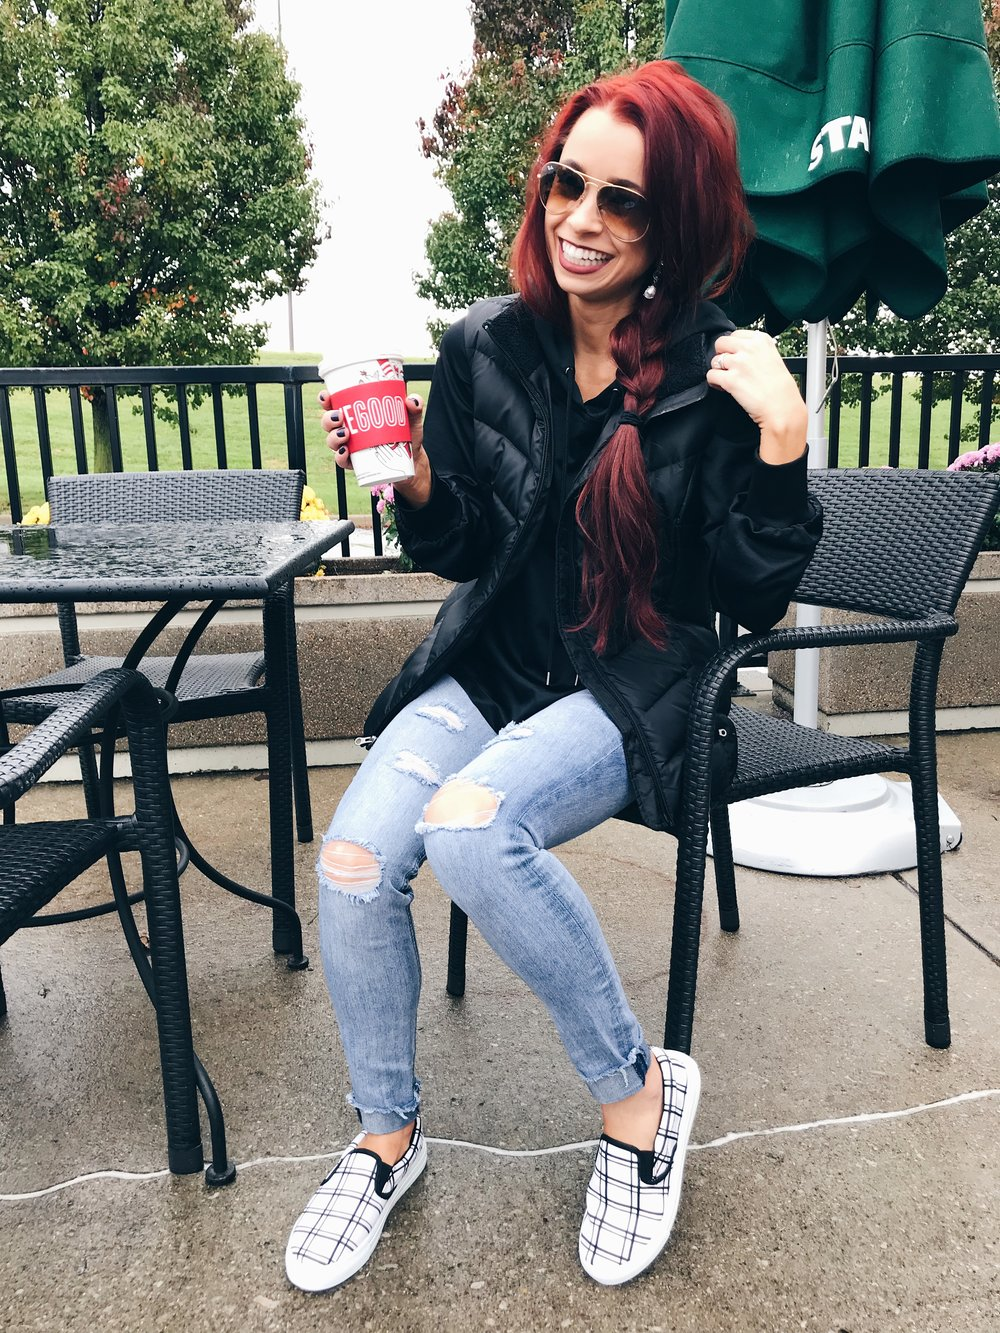 SHOP LOCAL HOLIDAY GIFT GUIDE by Indianapolis fashion blogger Trendy in Indy